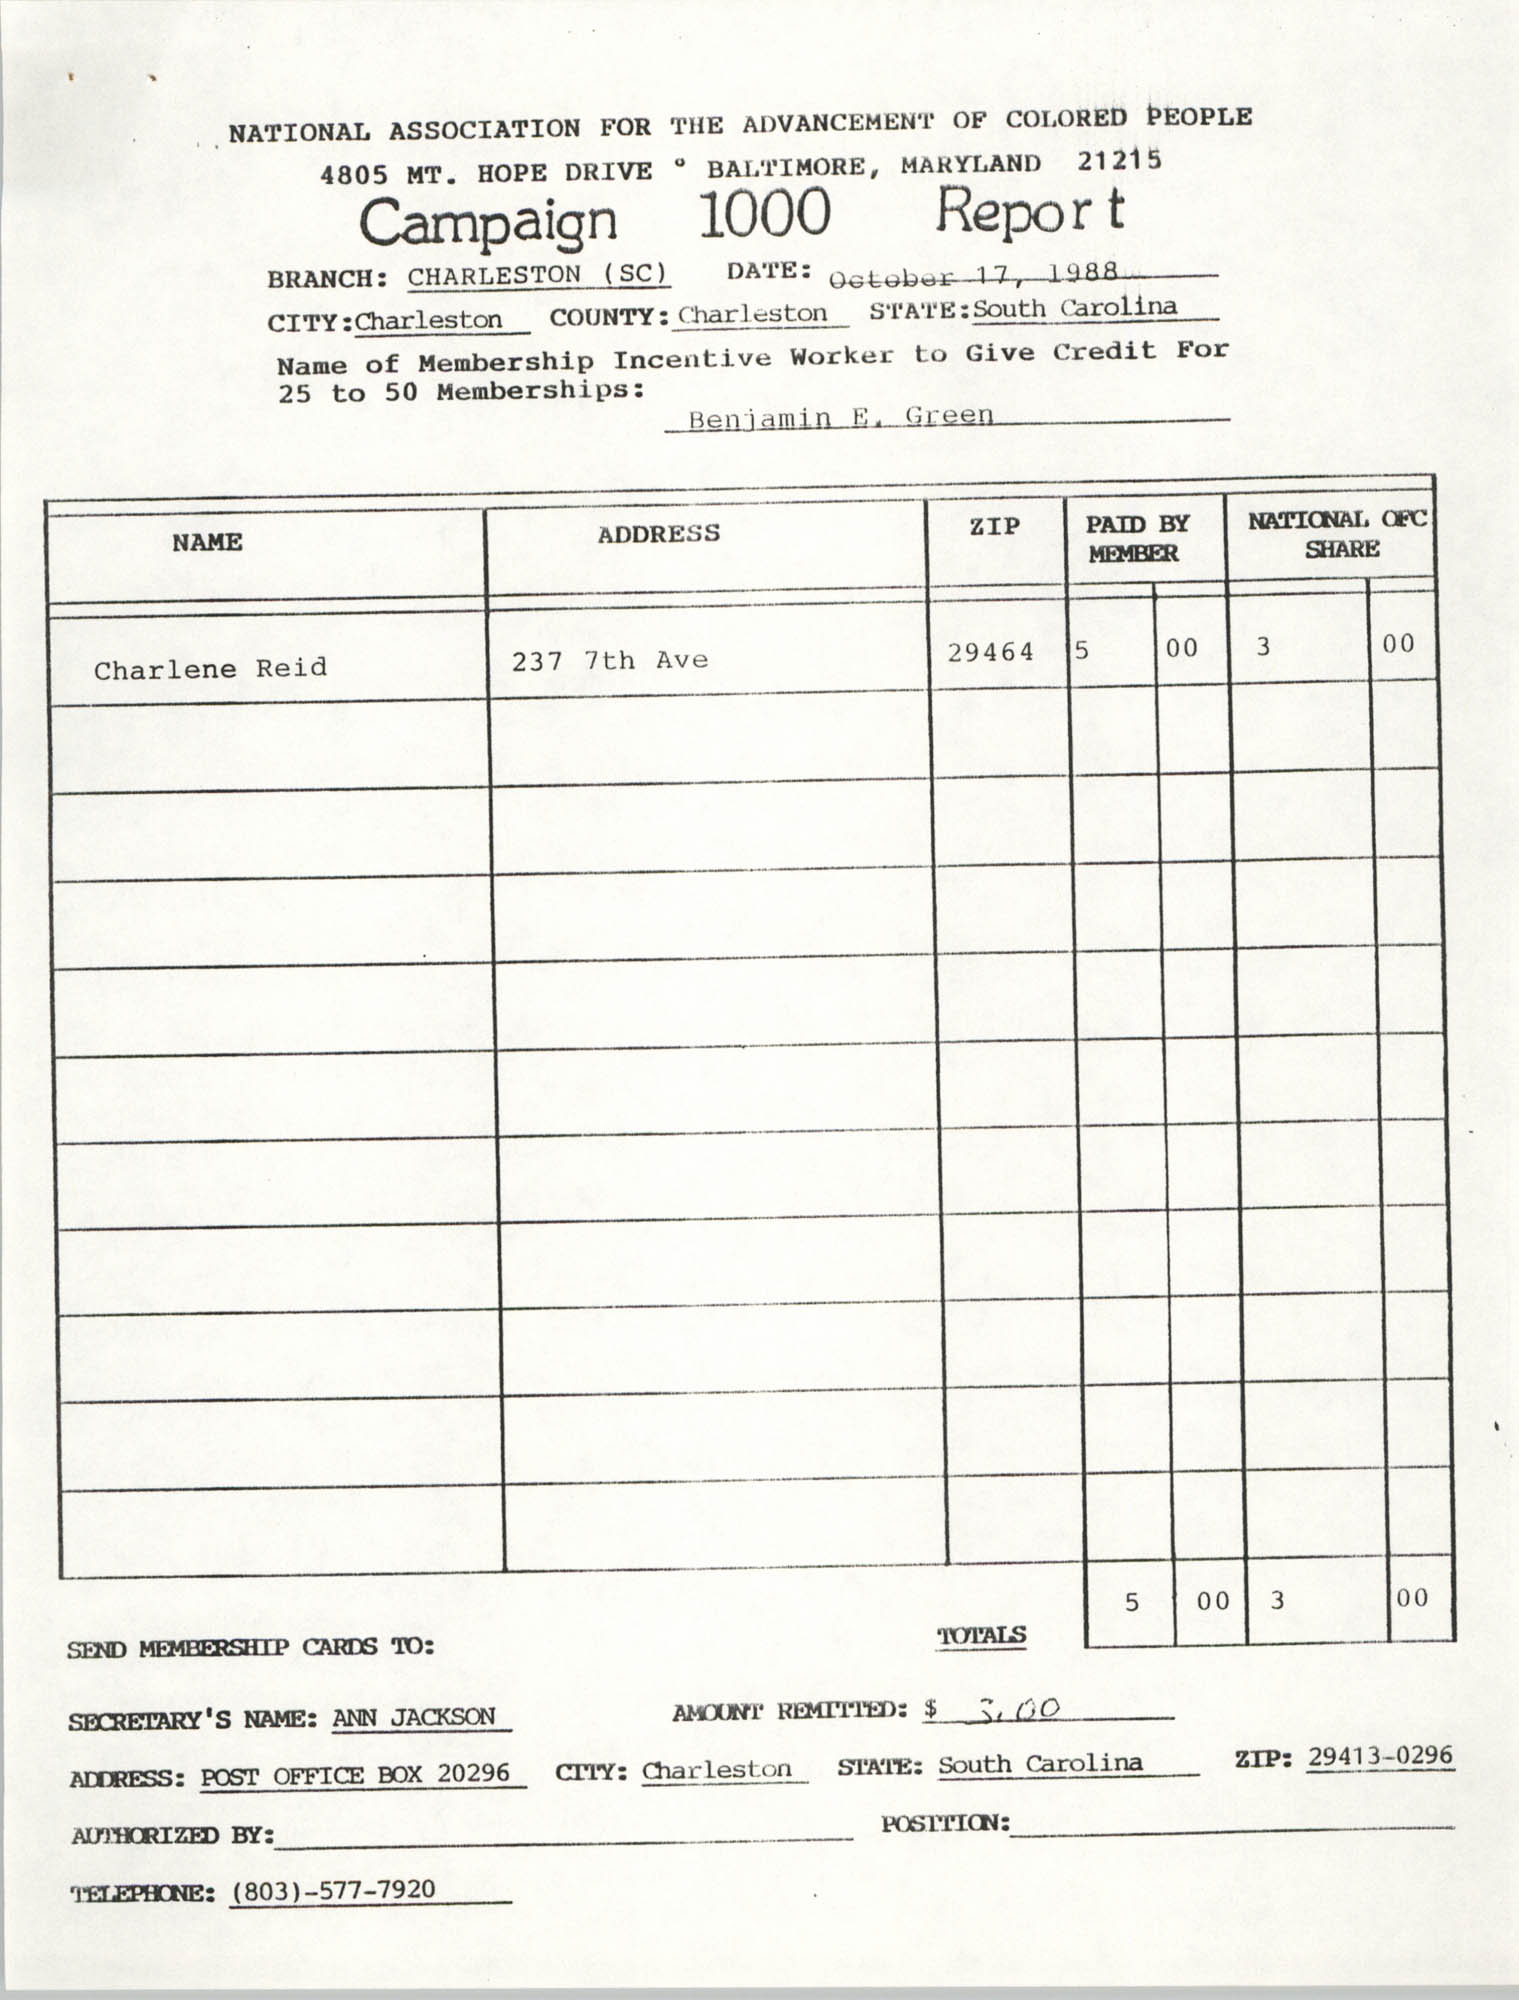 Campaign 1000 Report, Benjamin E. Green, Charleston Branch of the NAACP, October 17, 1988